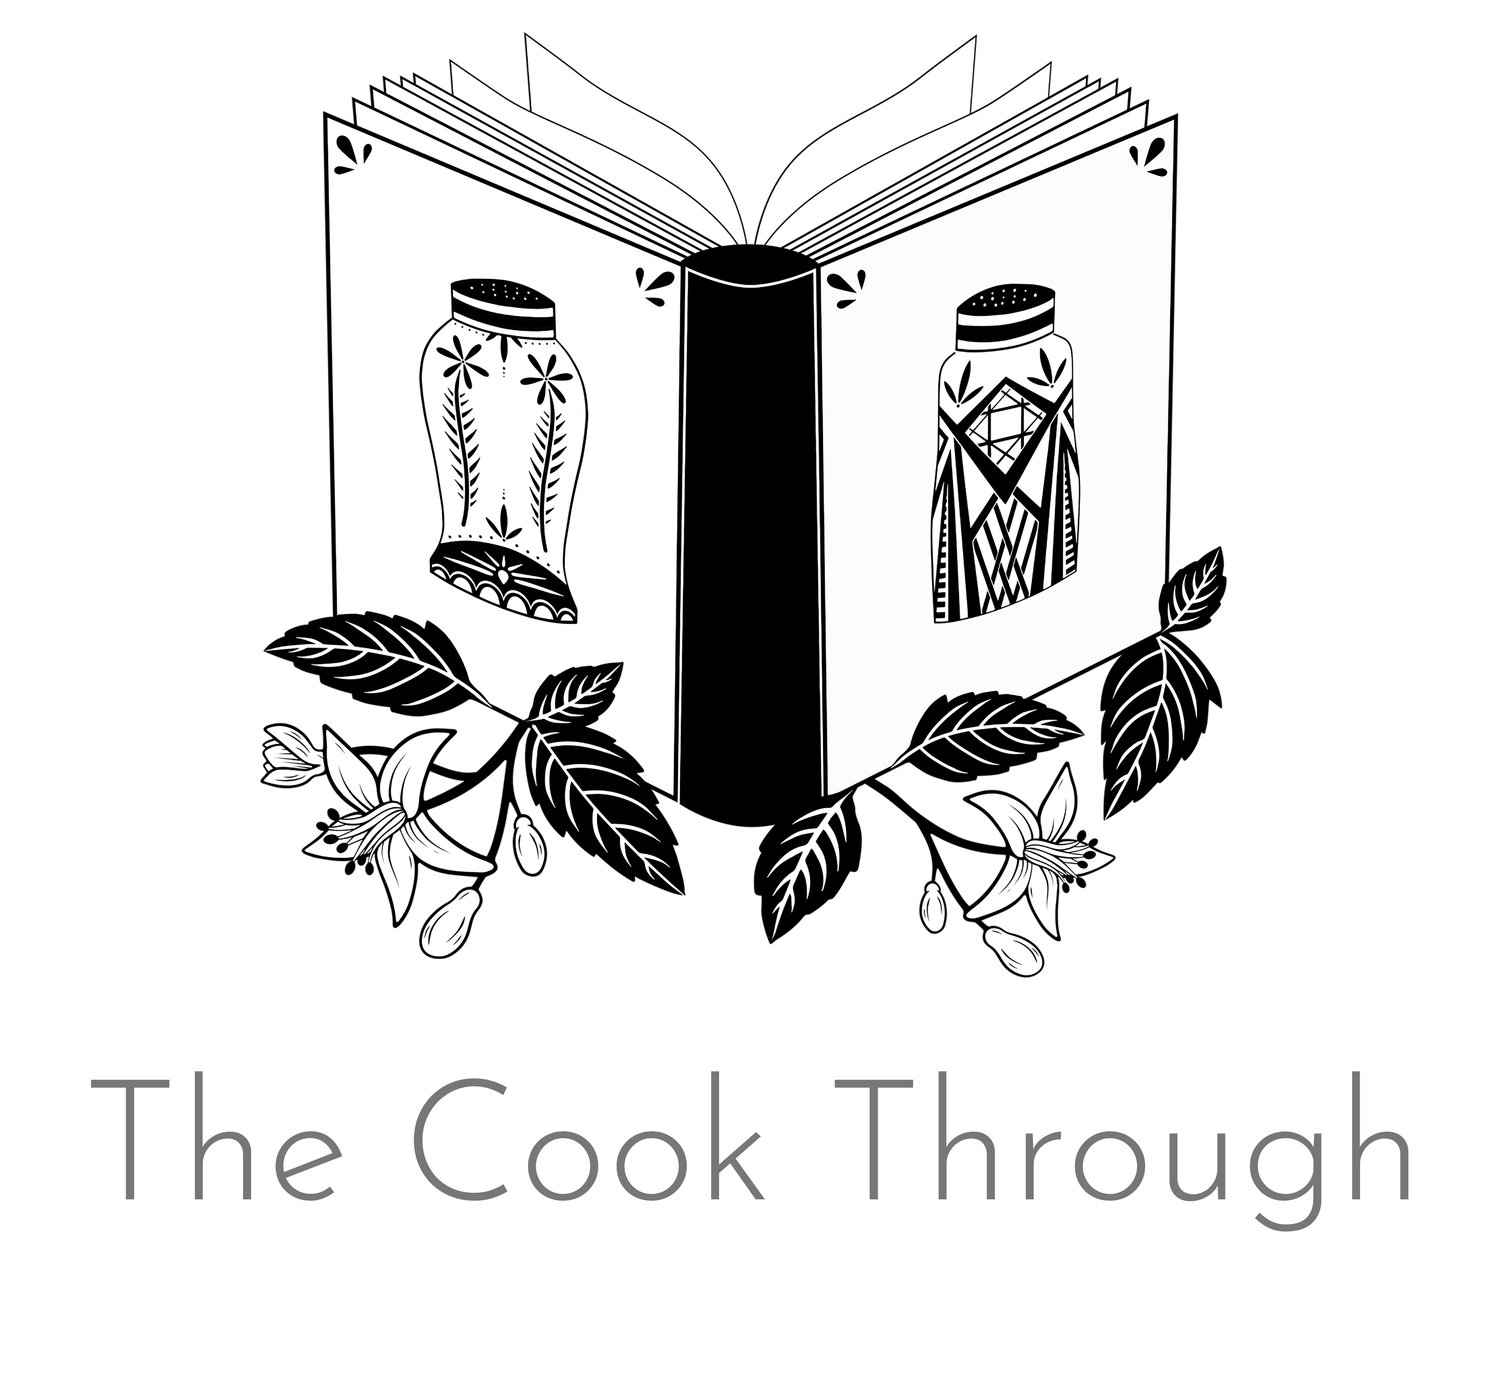 The Cook Through